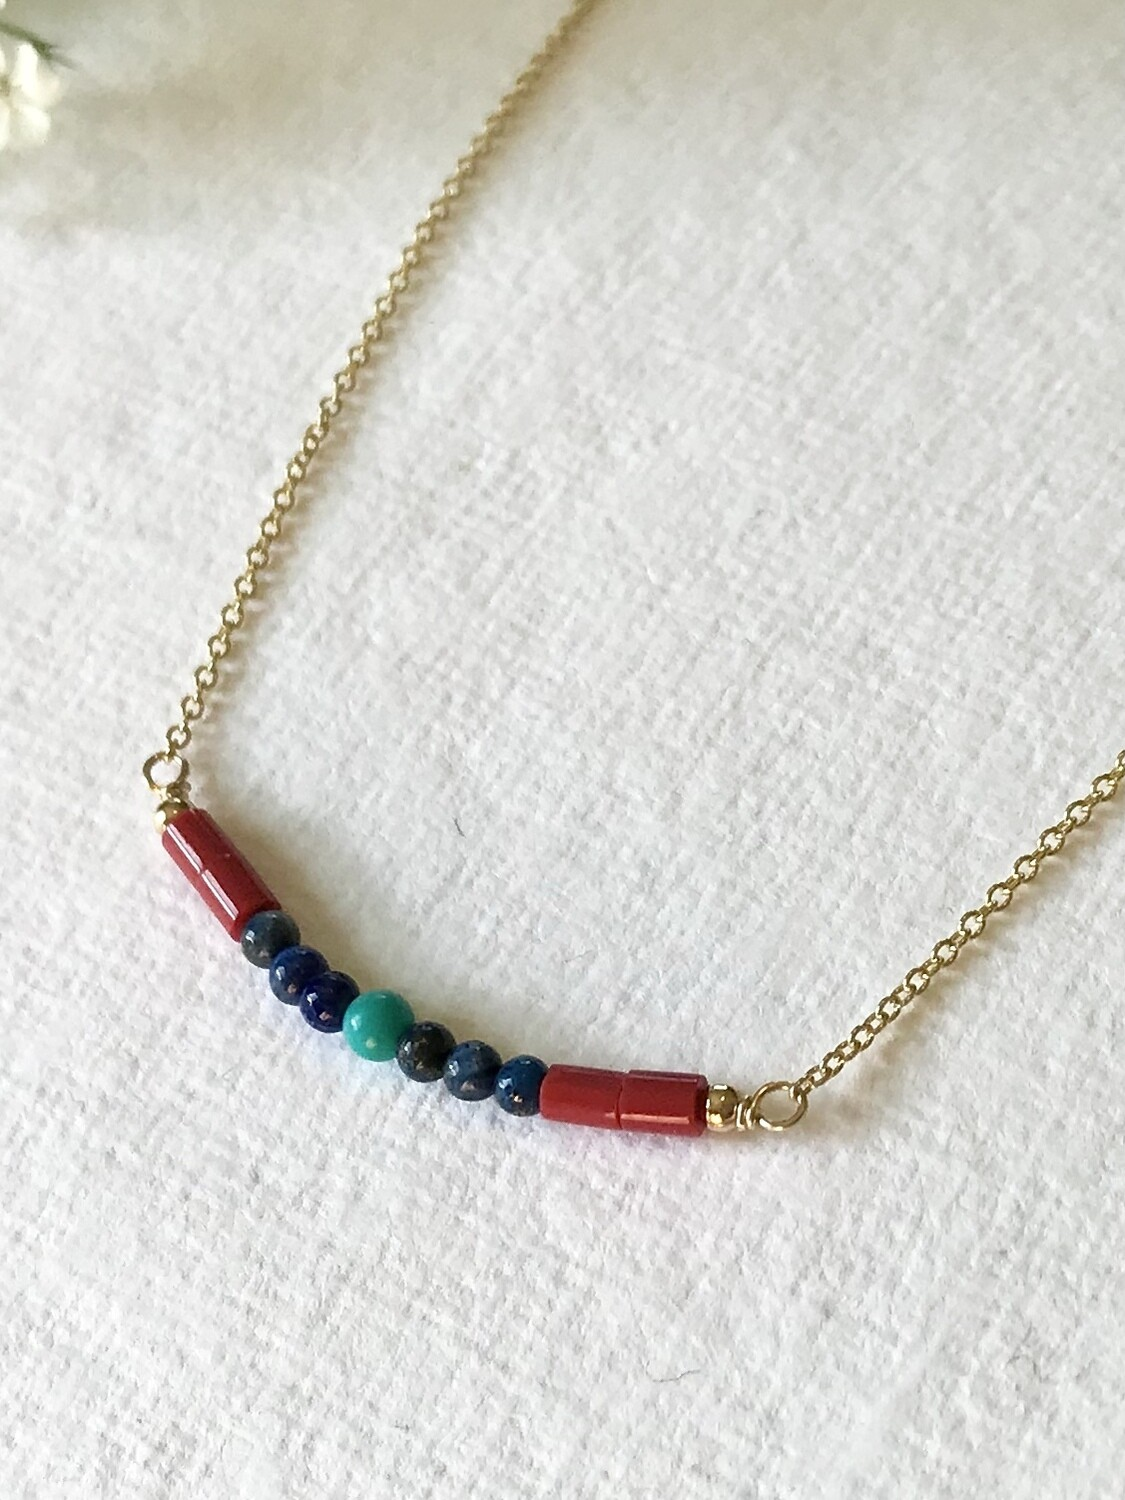 Coral, Lapis & Turquoise Artemis Necklace - GDFDSN1